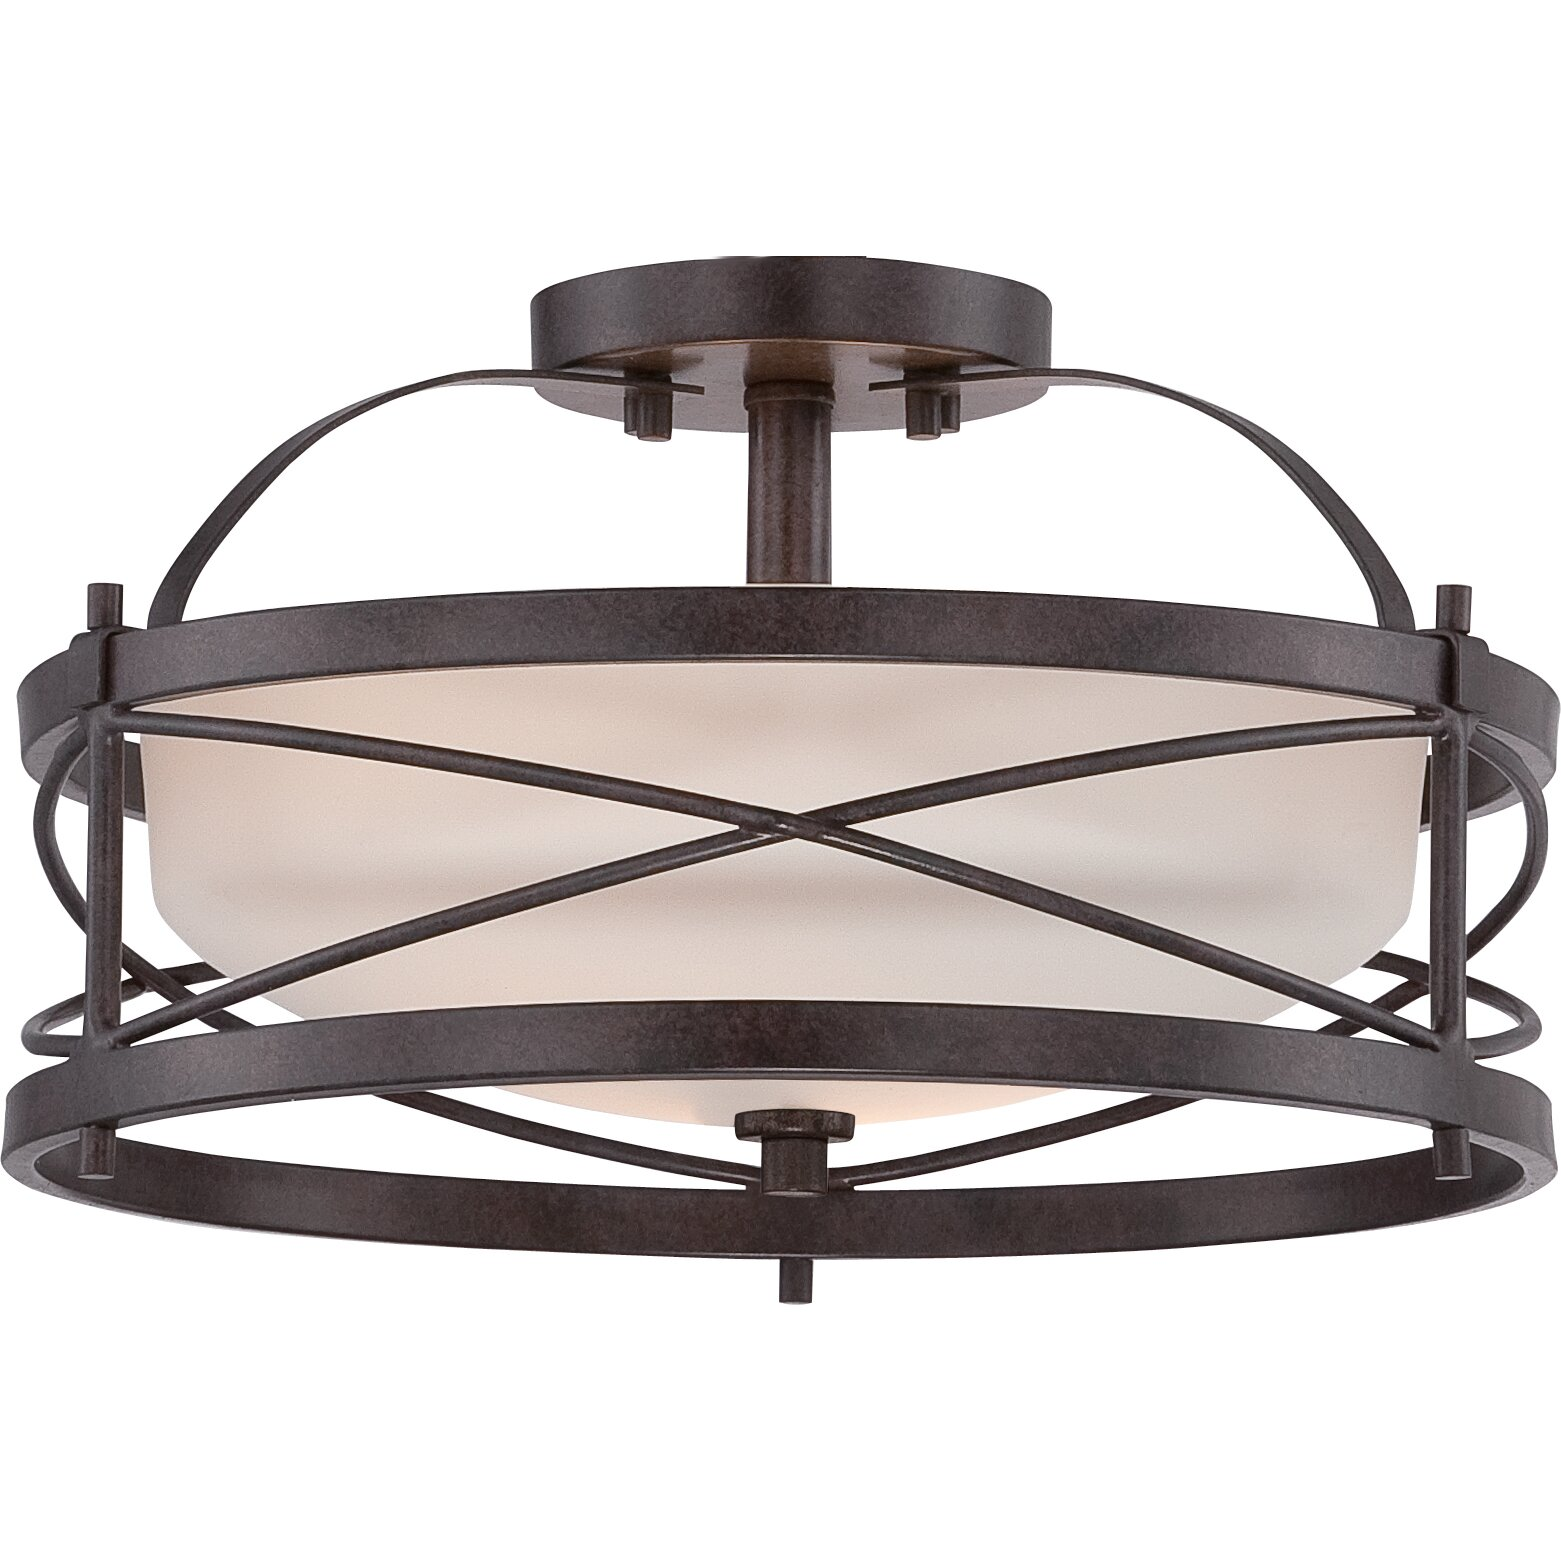 Darby home co farrier 2 light semi flush reviews wayfair for Flush mount bedroom lighting